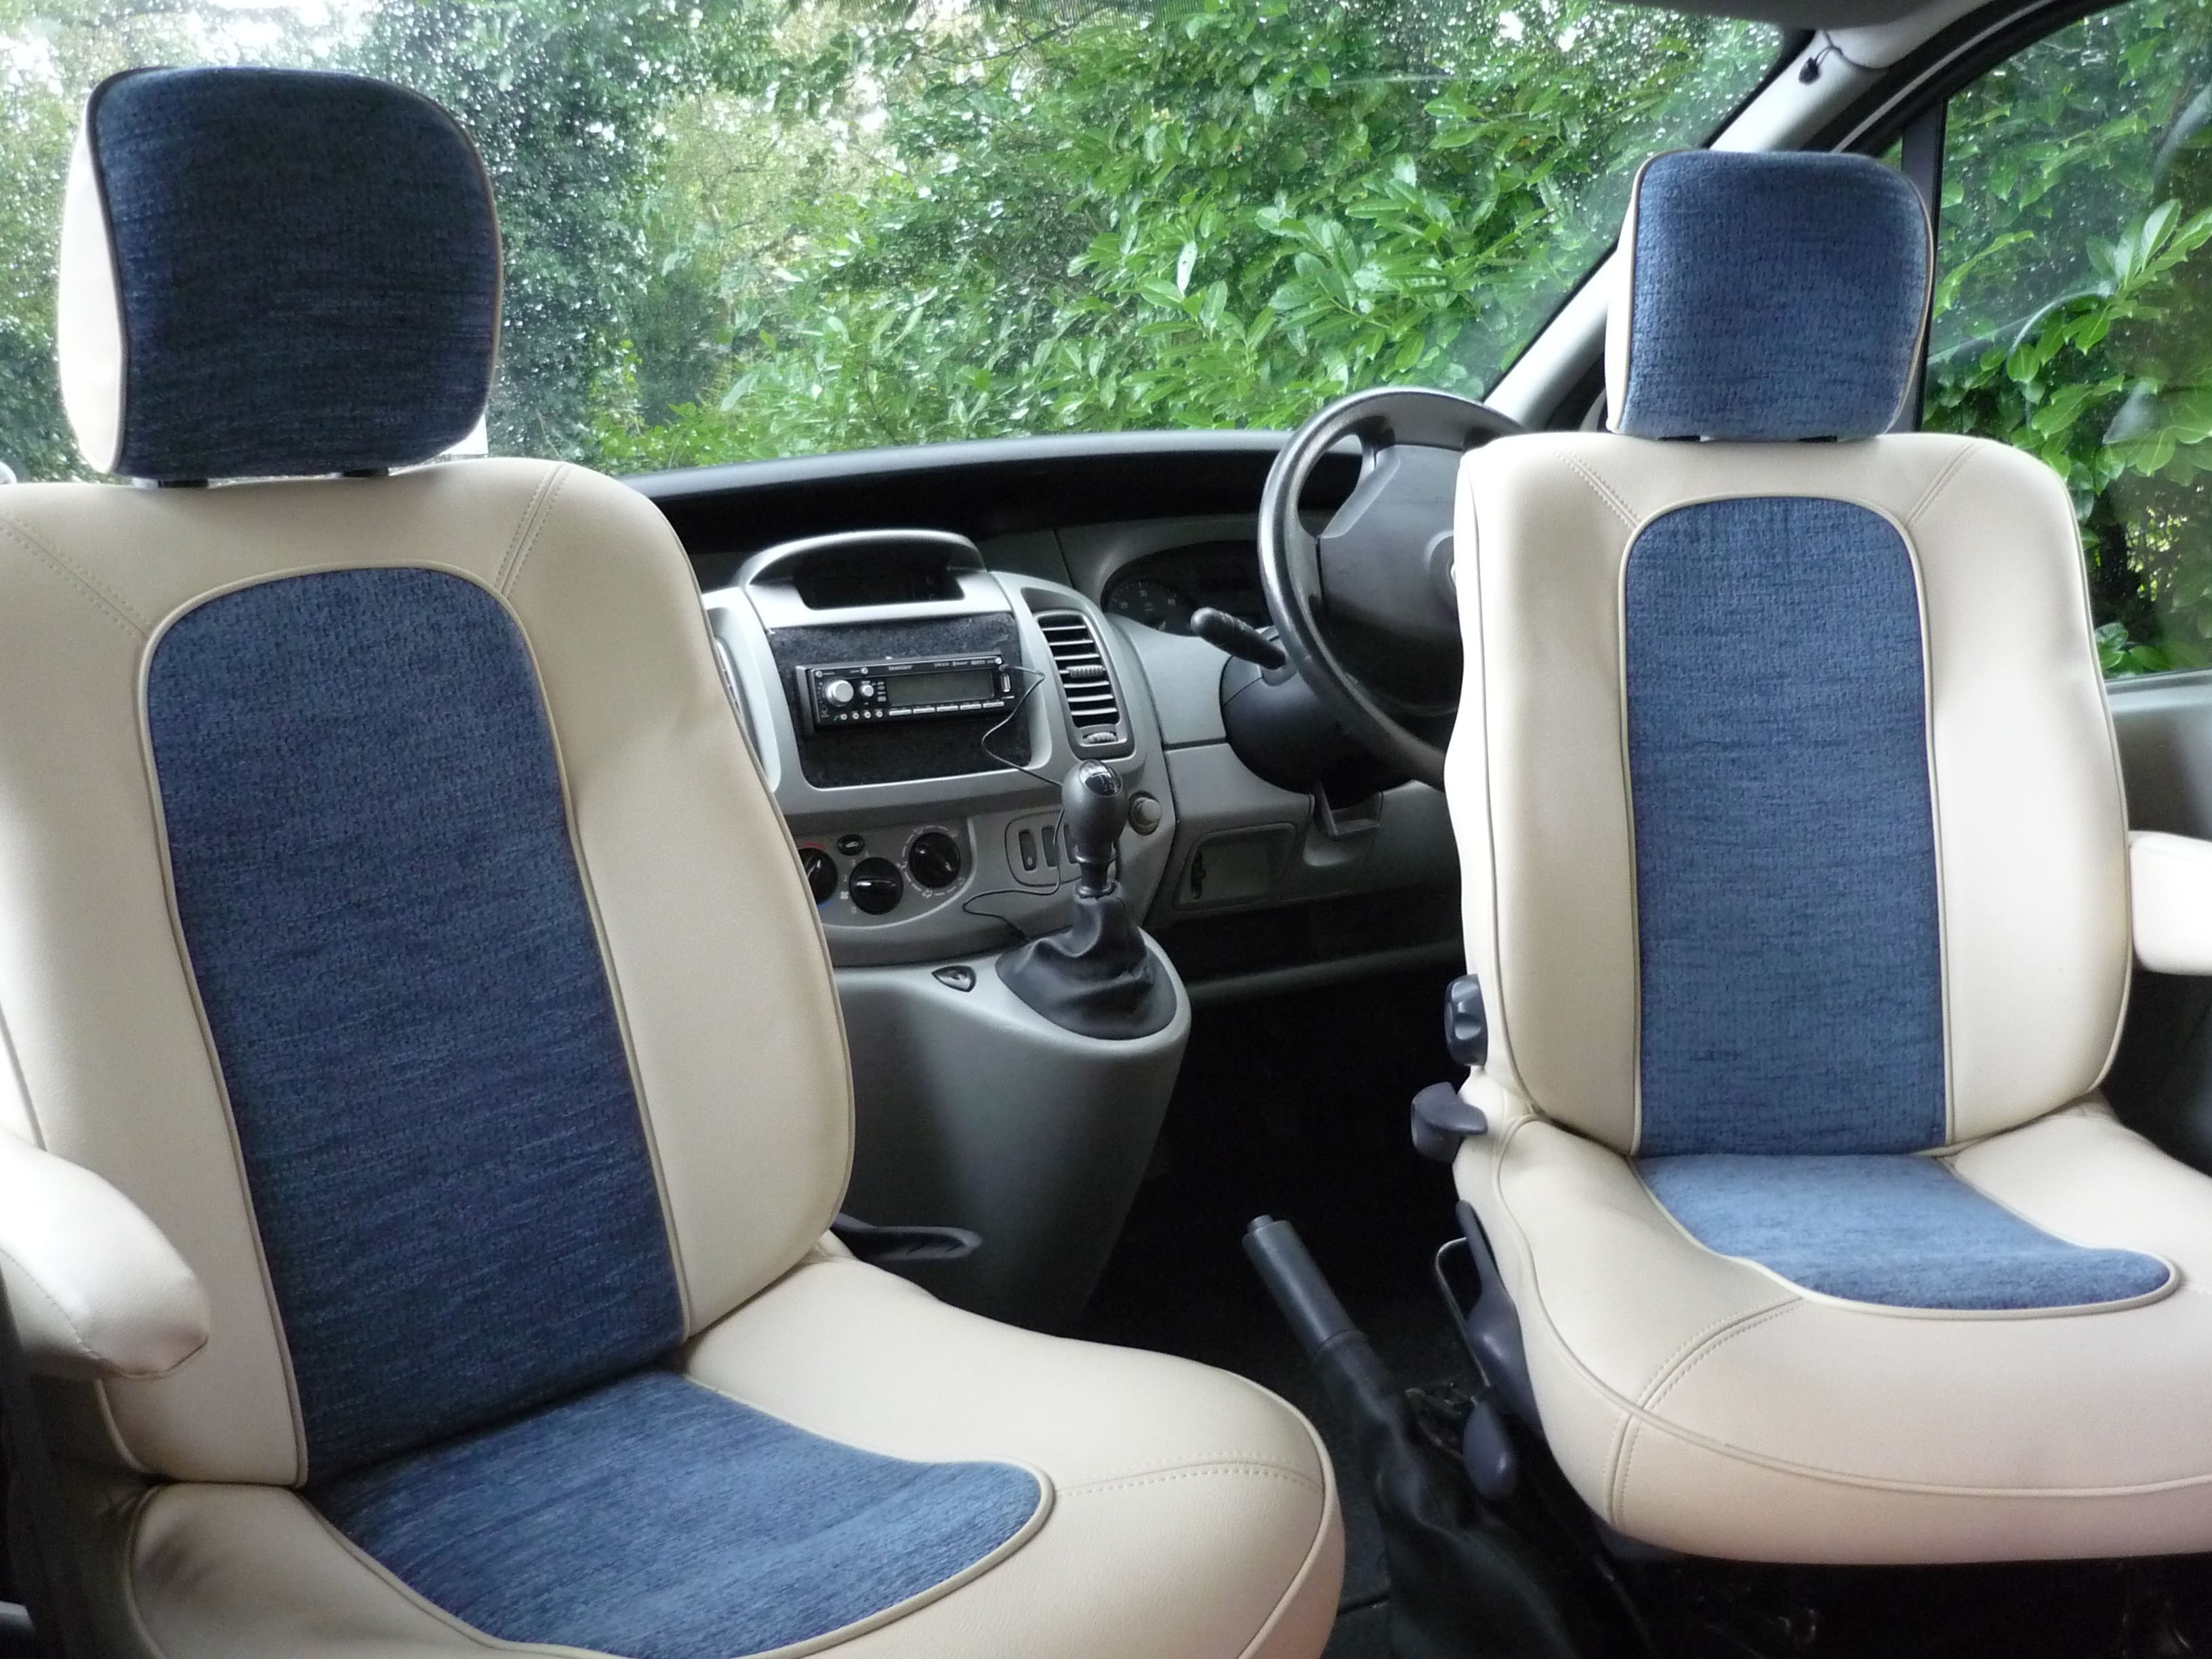 SWB Vehicles Have Twin Swivel Front Seats To Create A Nice Living Space